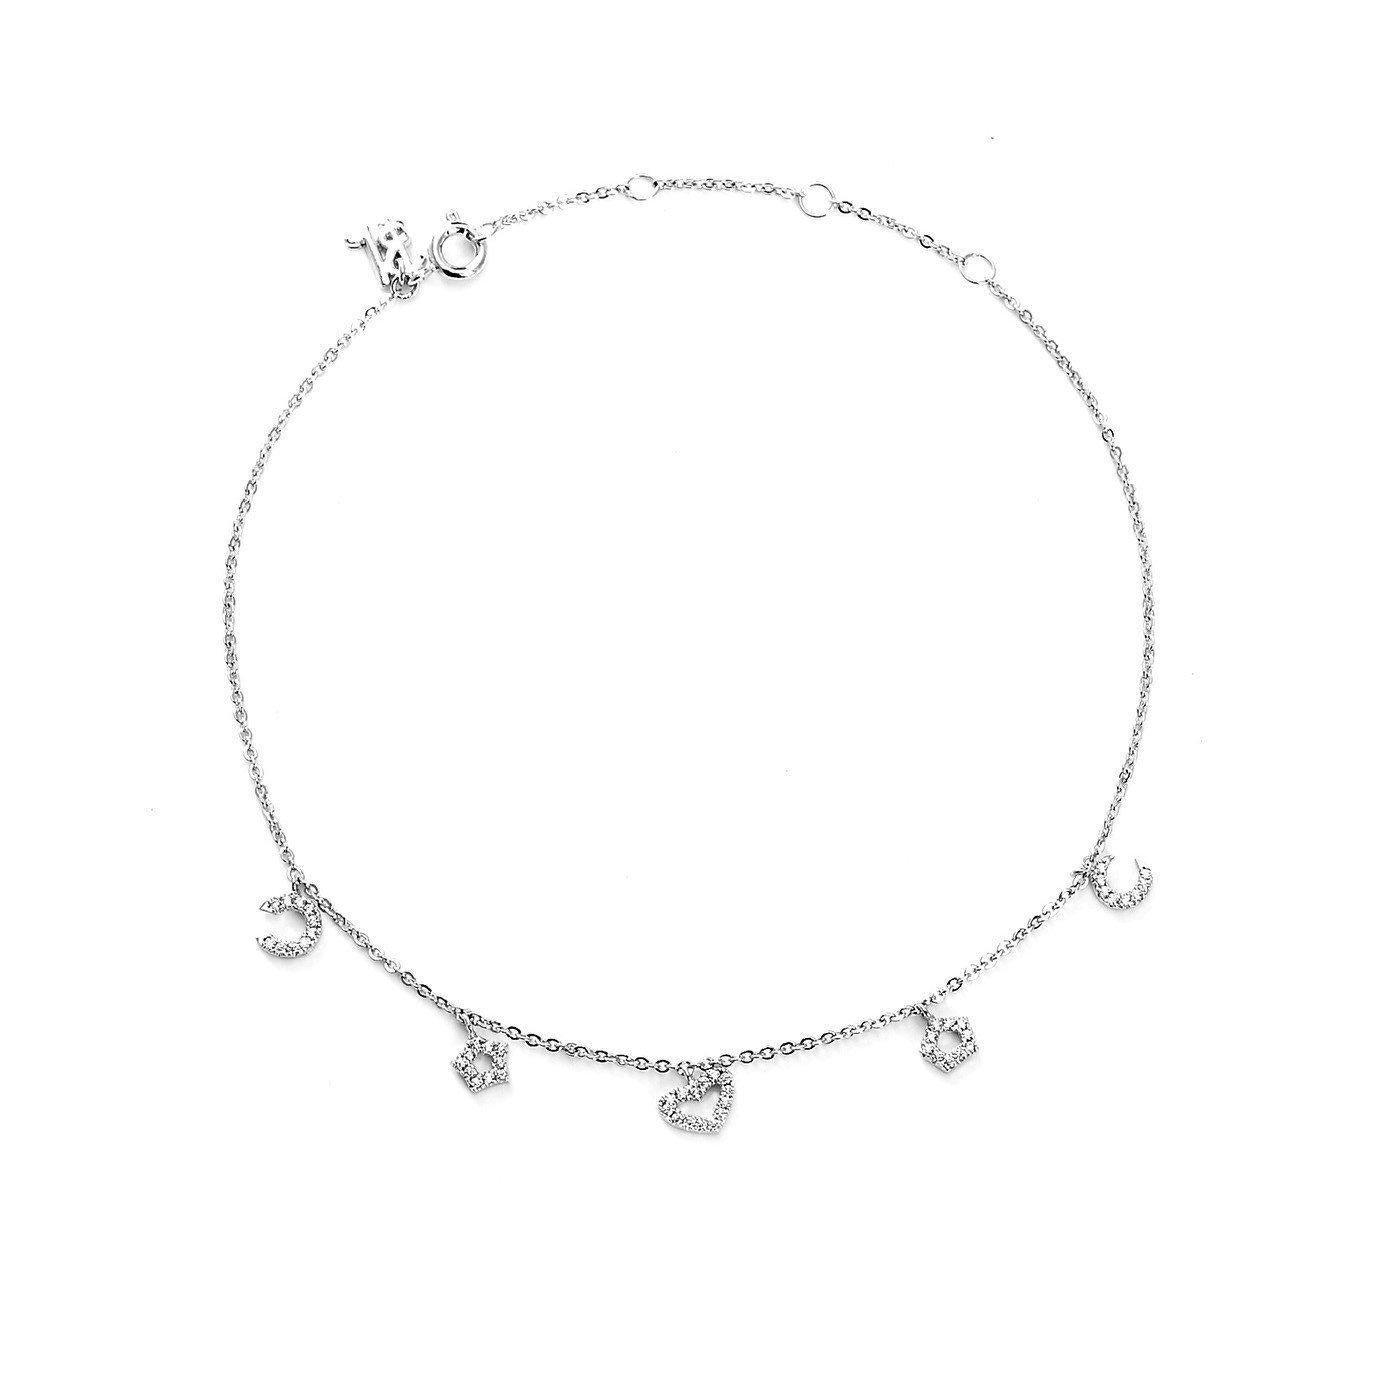 Wildflower Charms Silver Plated Anklet-Blinglane